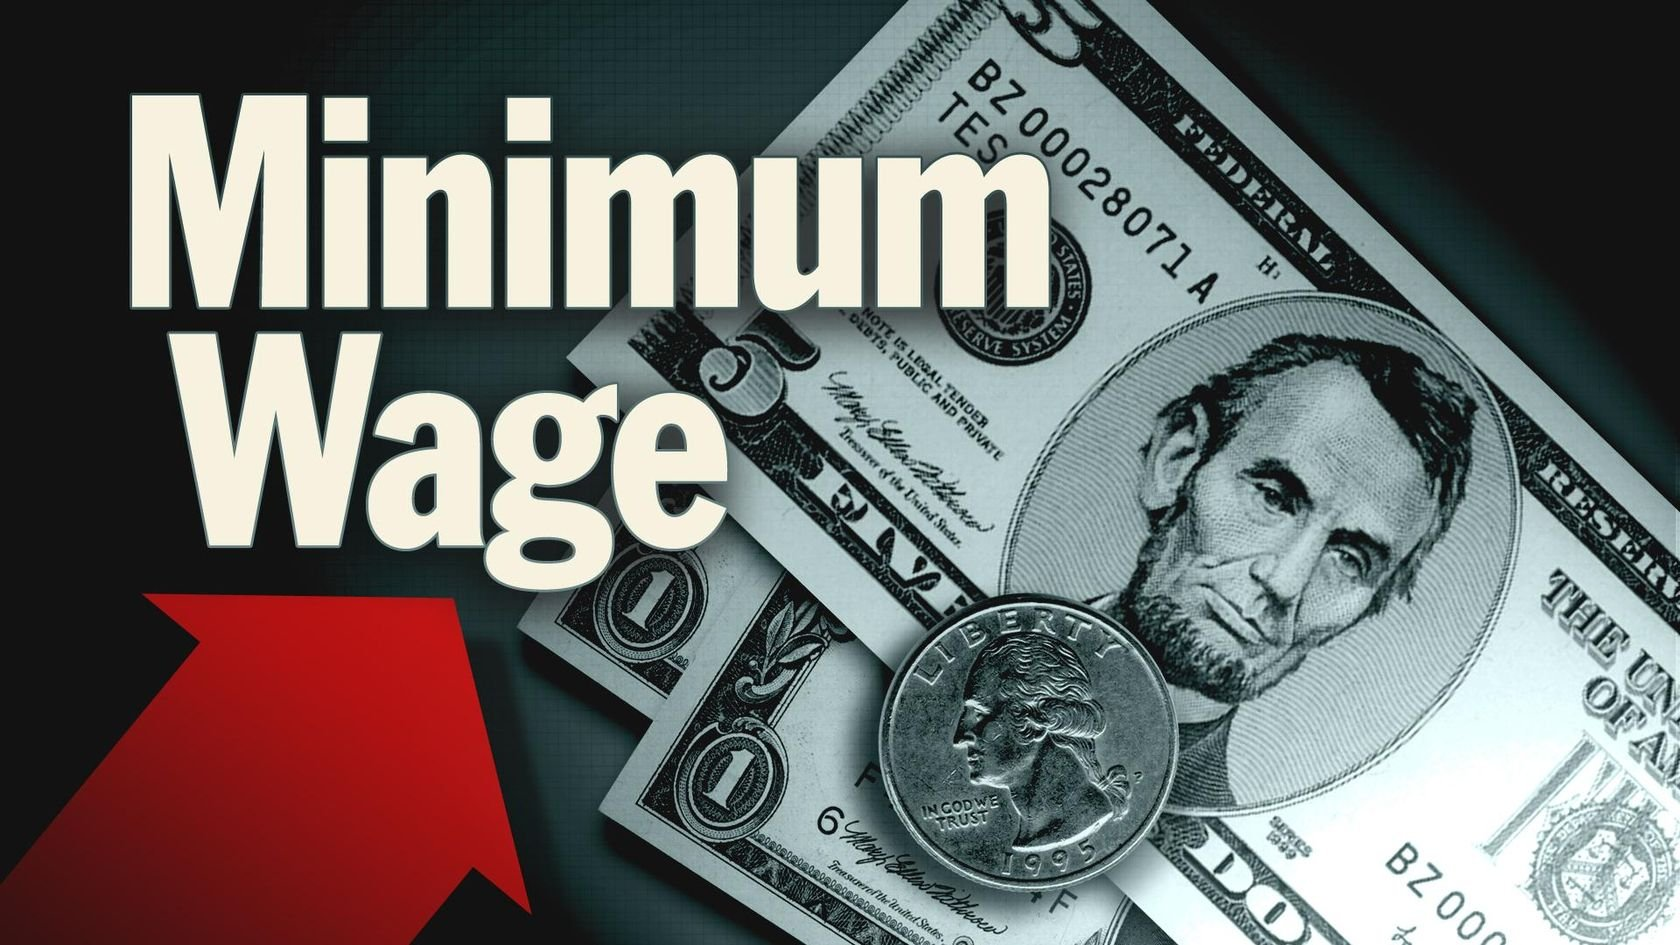 When does the minimum wage go up in Missouri?